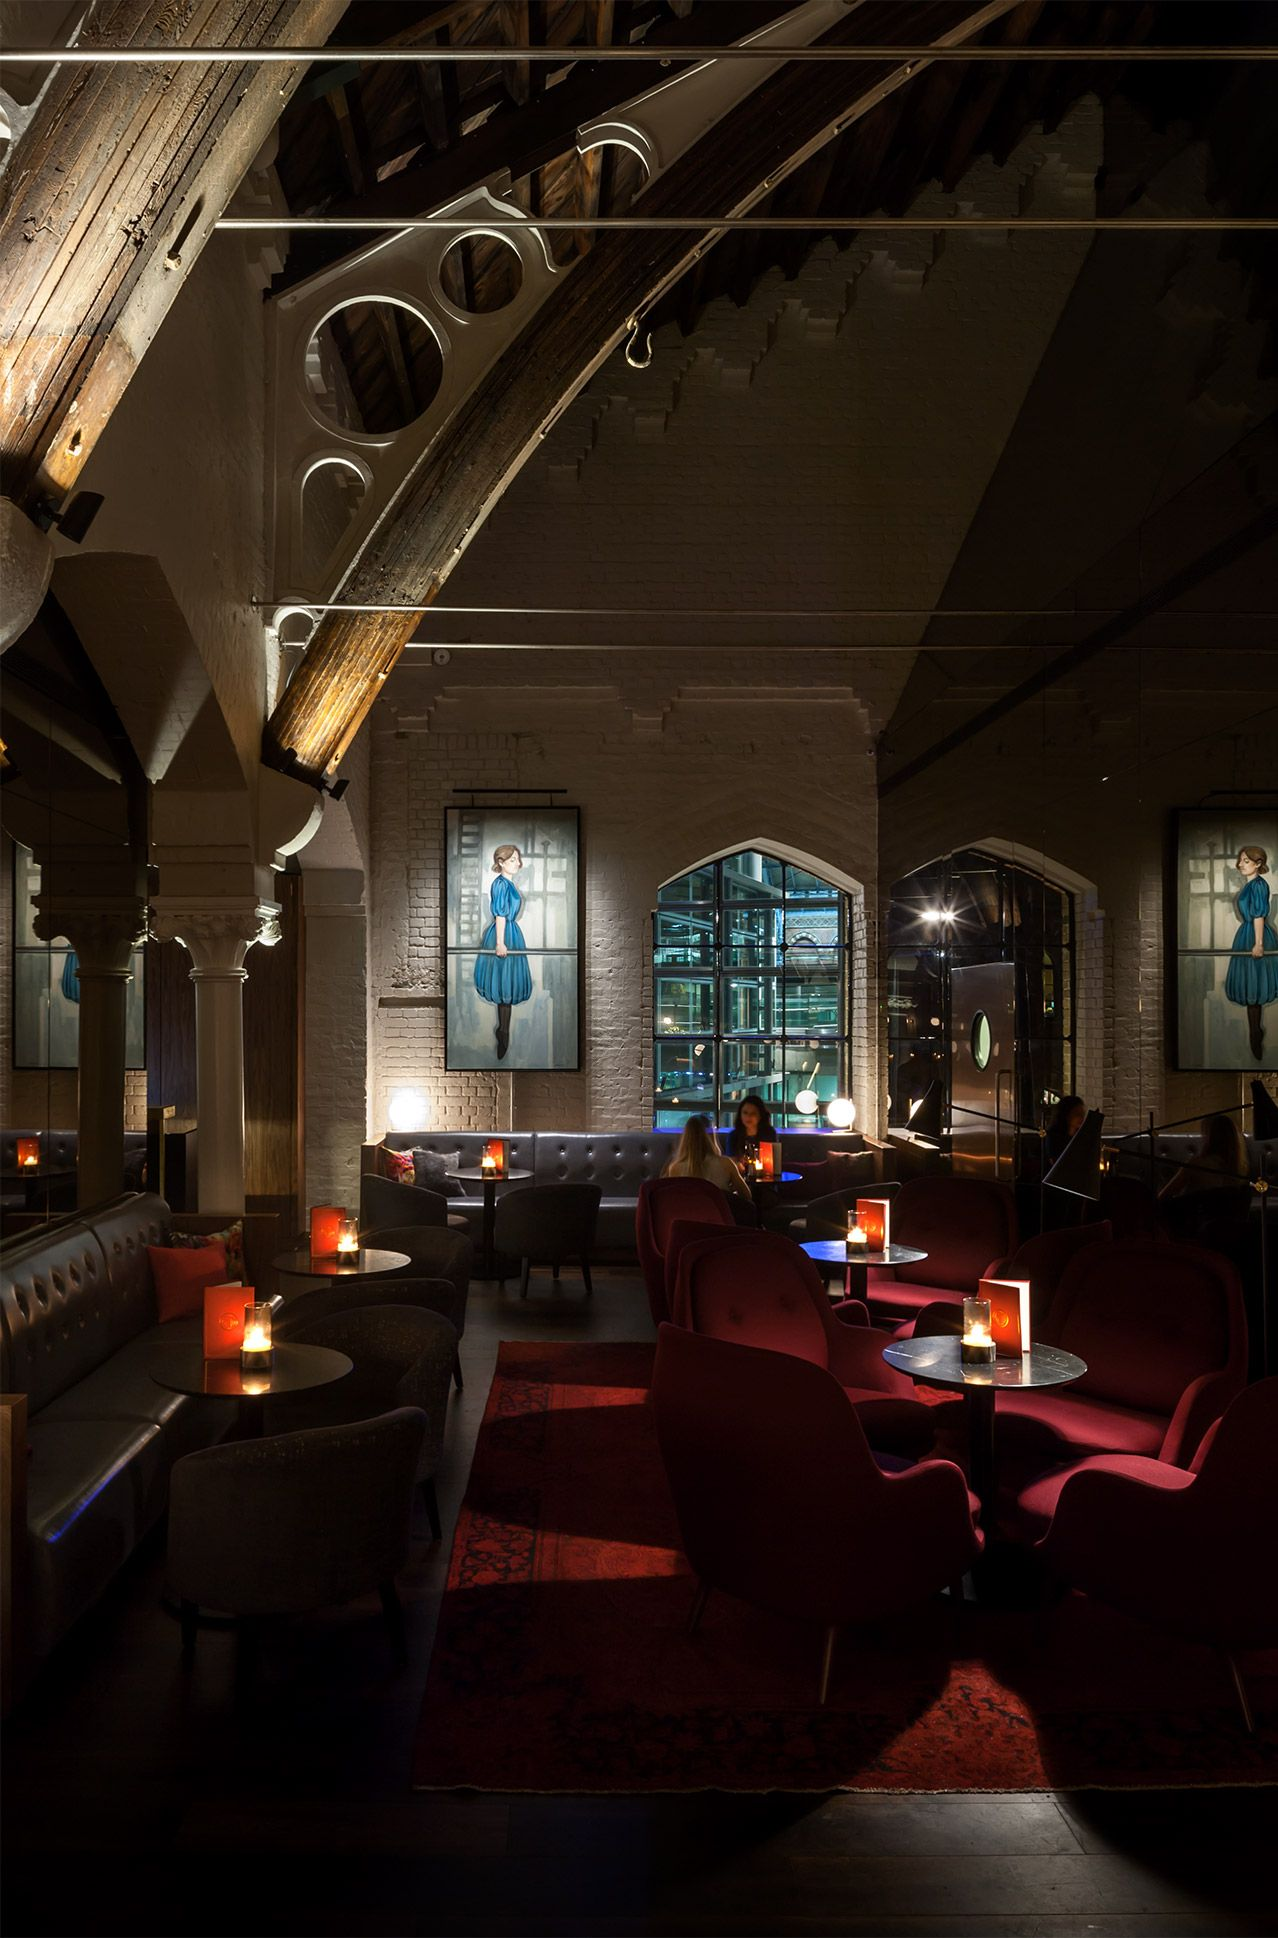 German Gymnasium by Conran & Partners – best restaurant in a heritage building